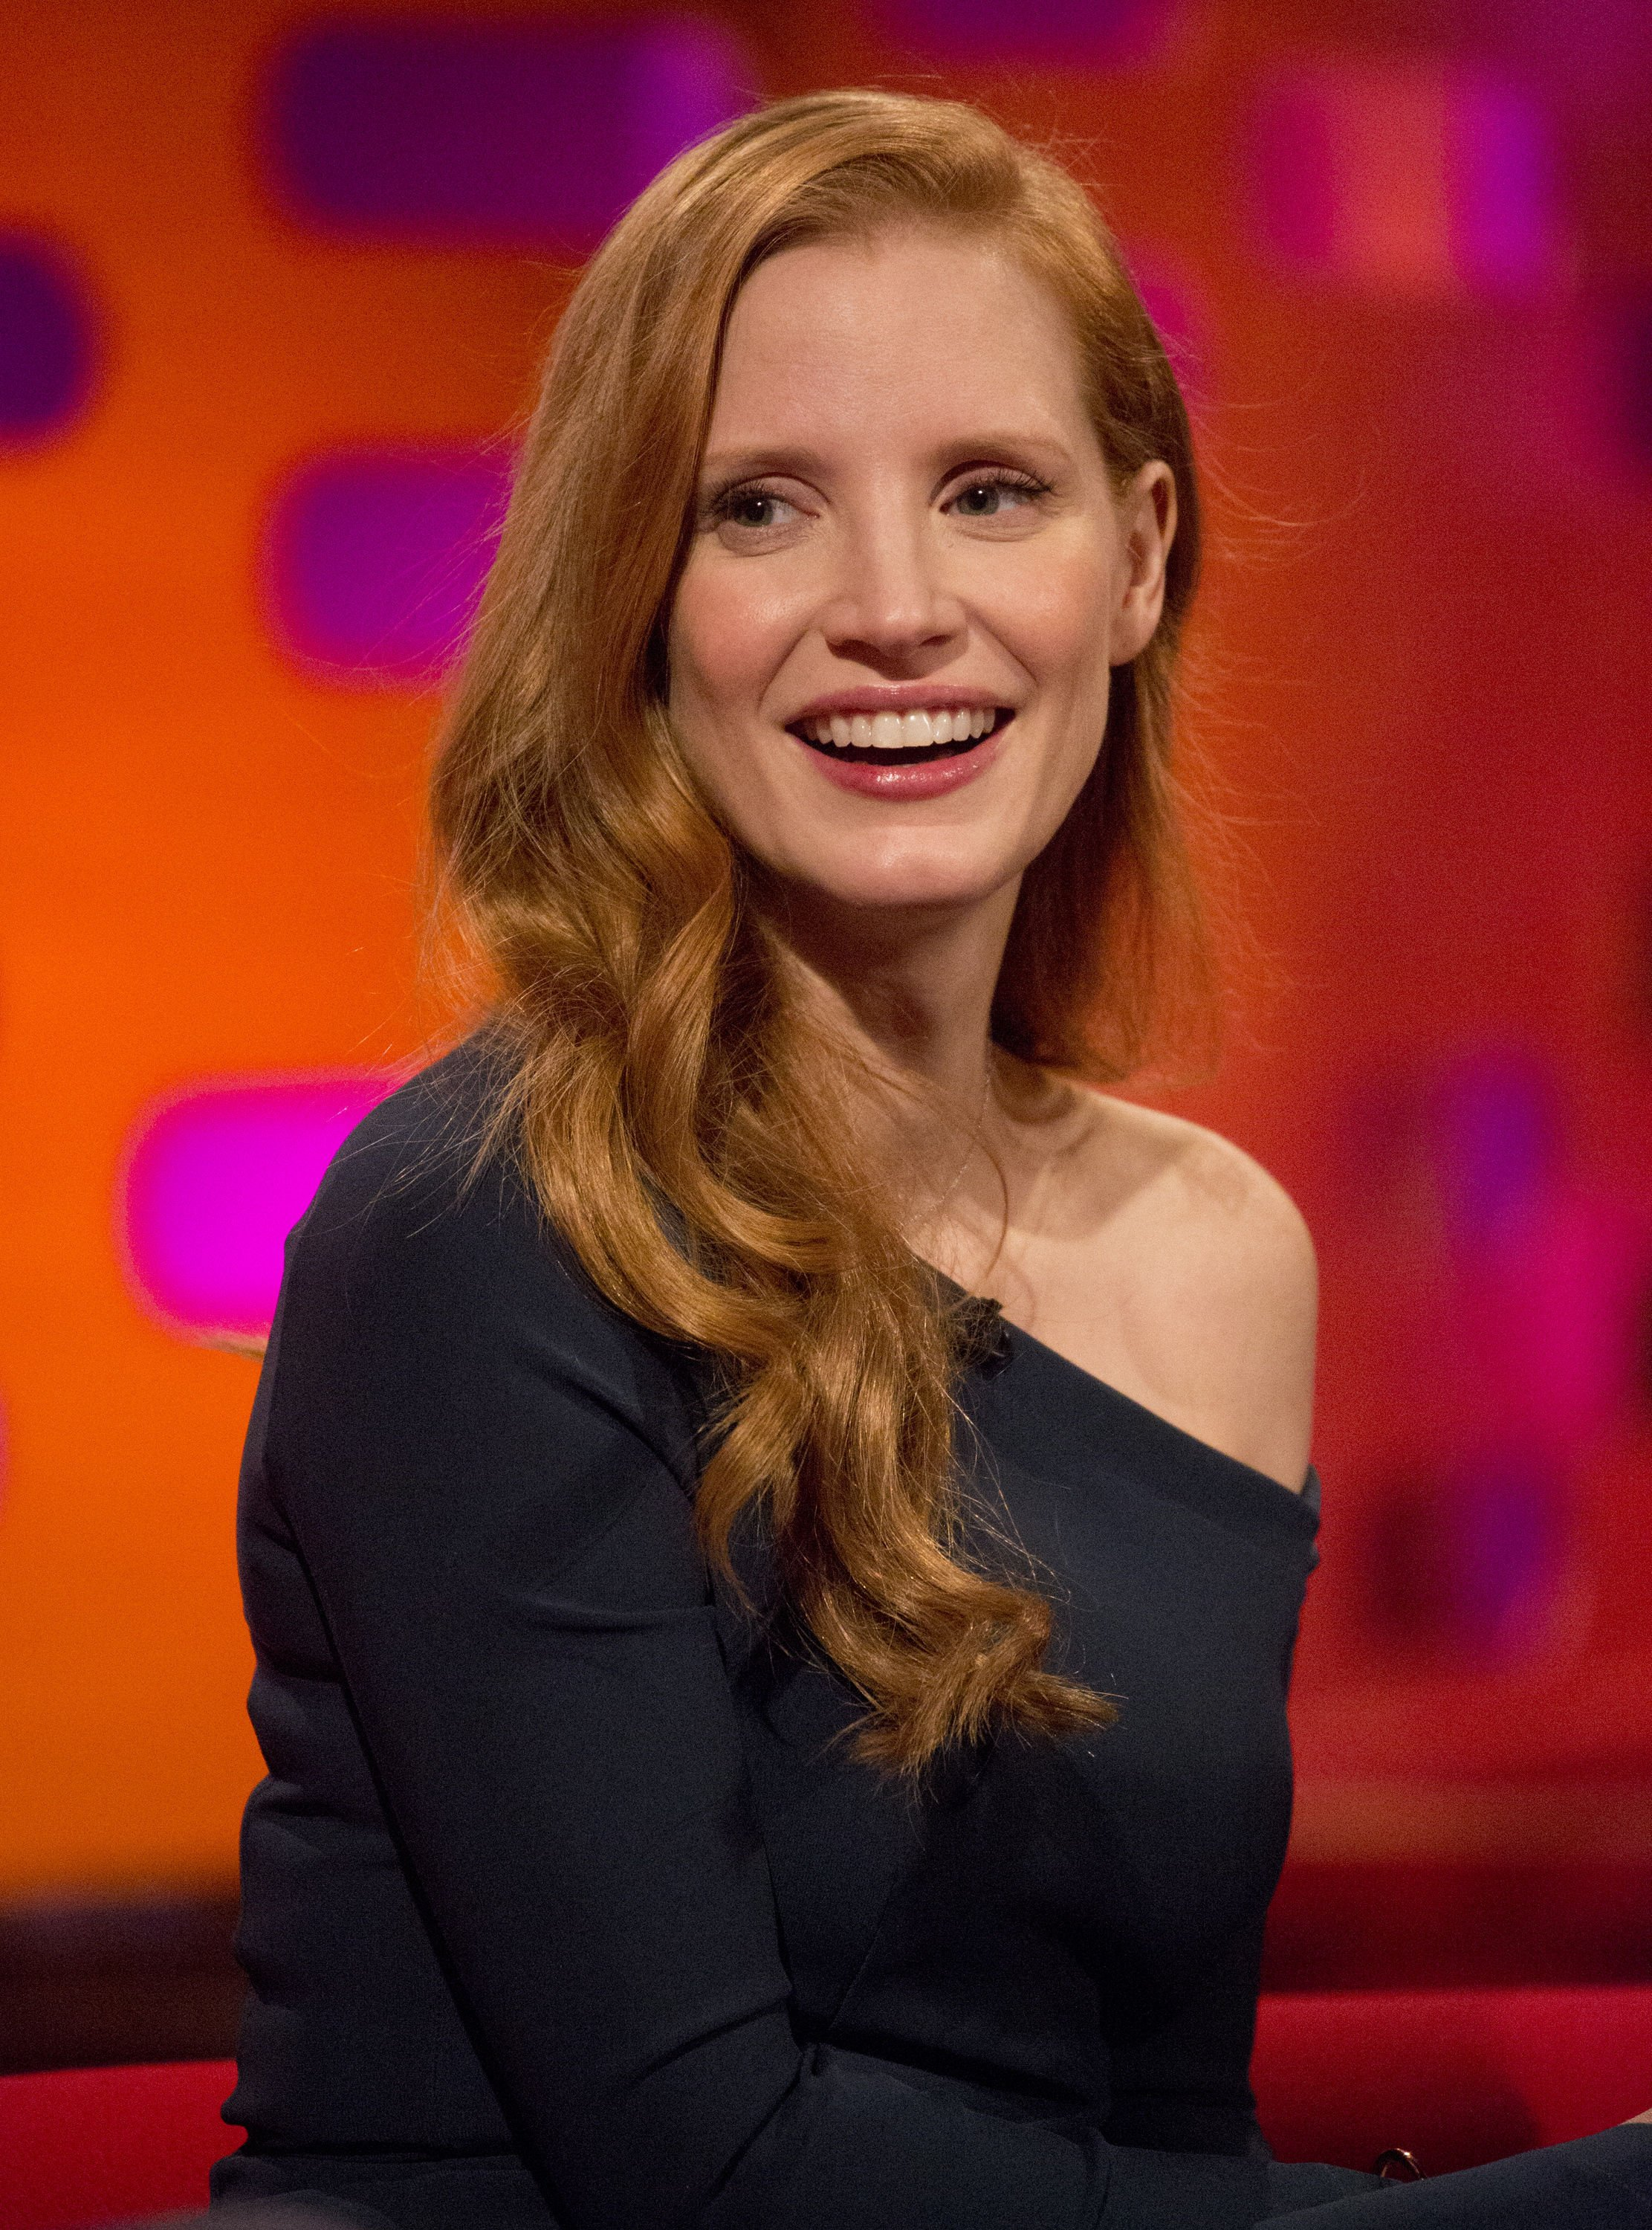 Jessica Chastain during filming of the Graham Norton Show at The London Studios, to be aired on BBC One on Friday., Image: 357195786, License: Rights-managed, Restrictions: , Model Release: no, Credit line: Profimedia, Press Association